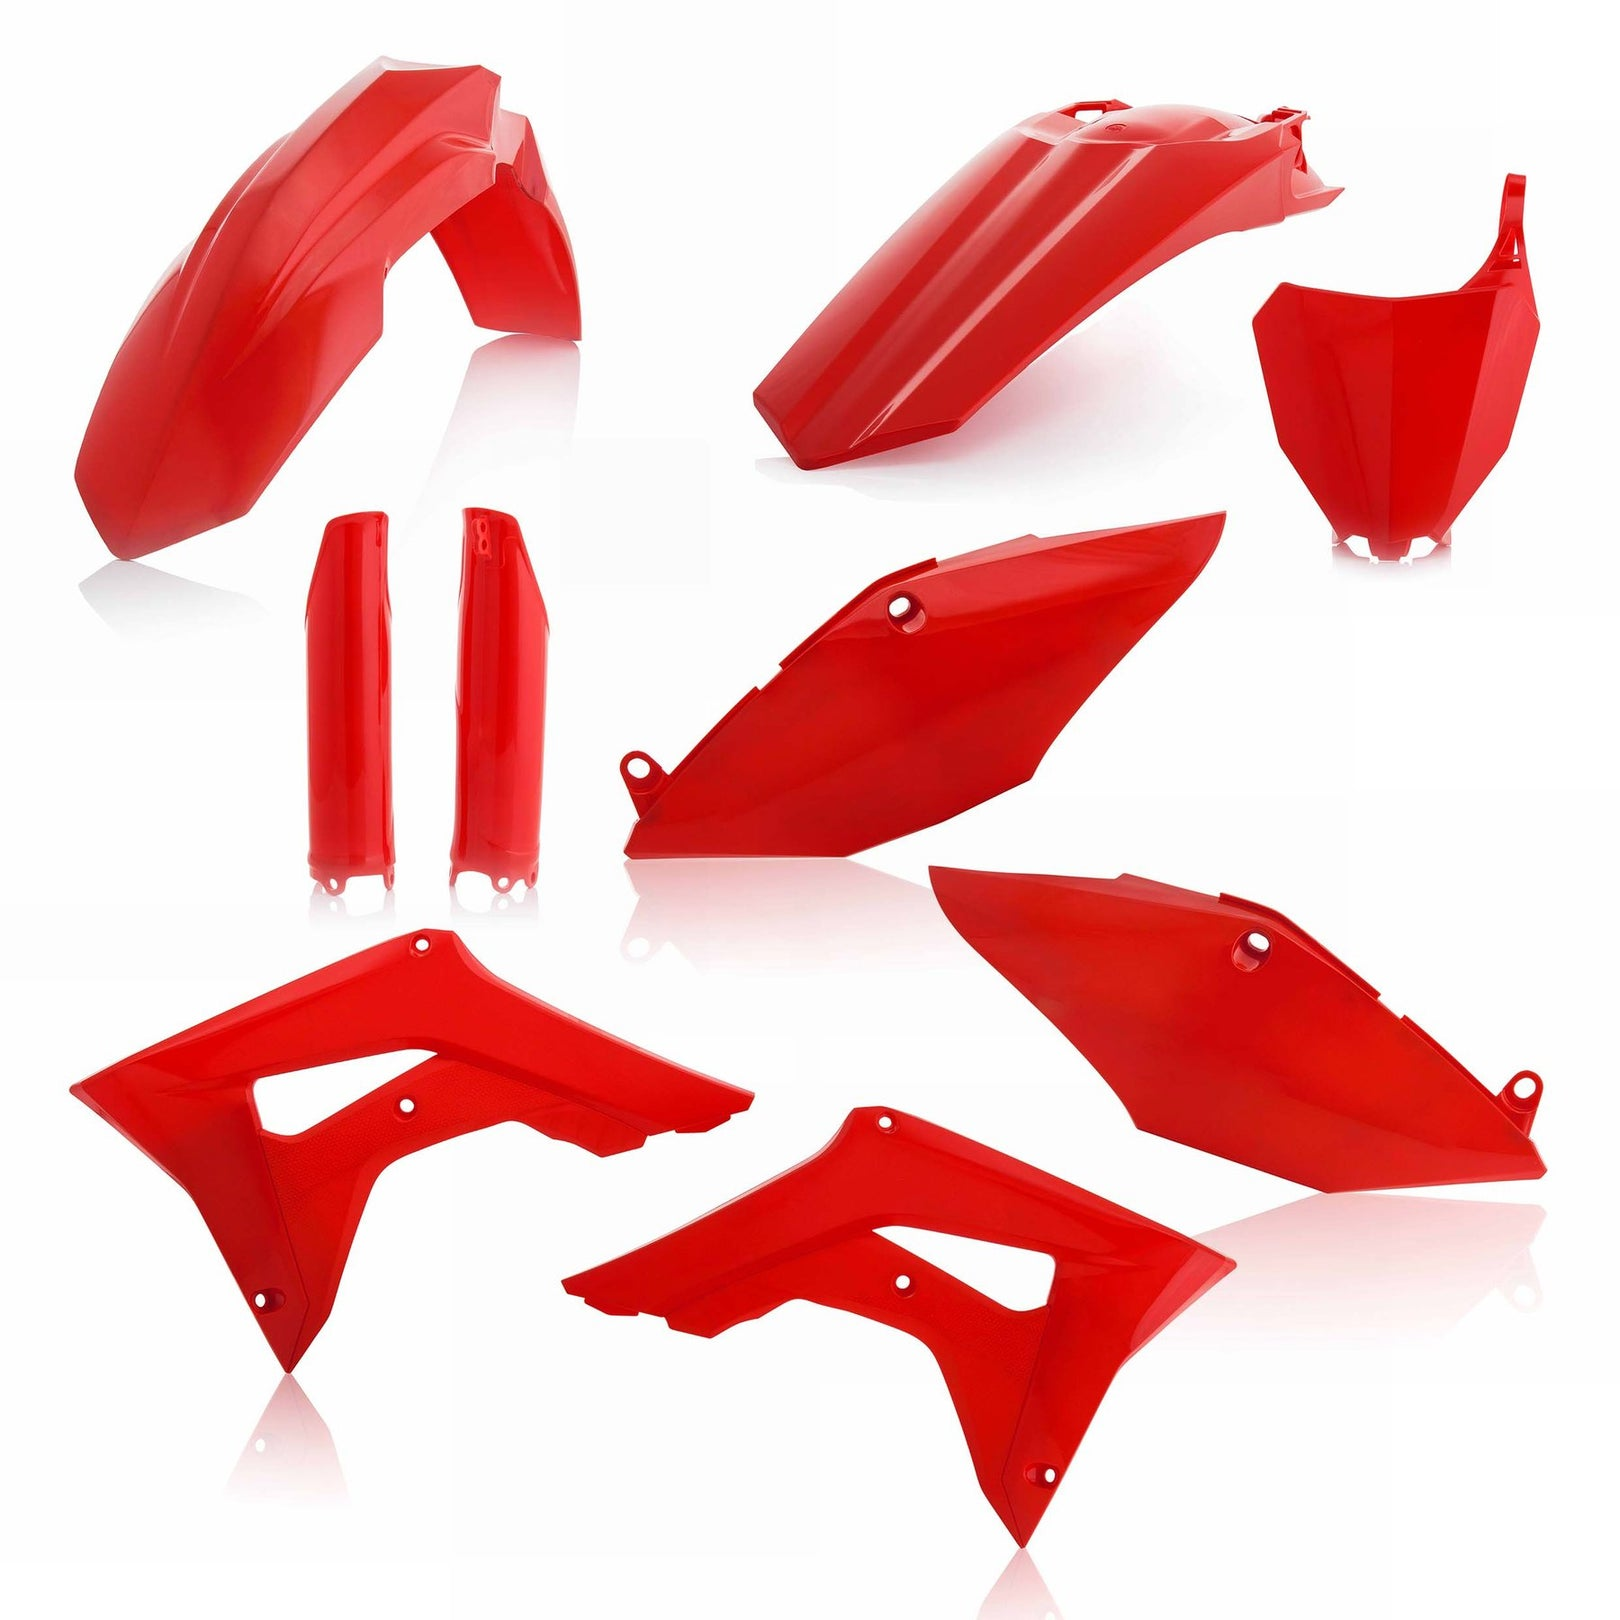 HONDA FULL PLASTIC KIT - RED - CRF250R/450R: 19-20 - Acerbis (includes airbox cover, does not include the tank cover)